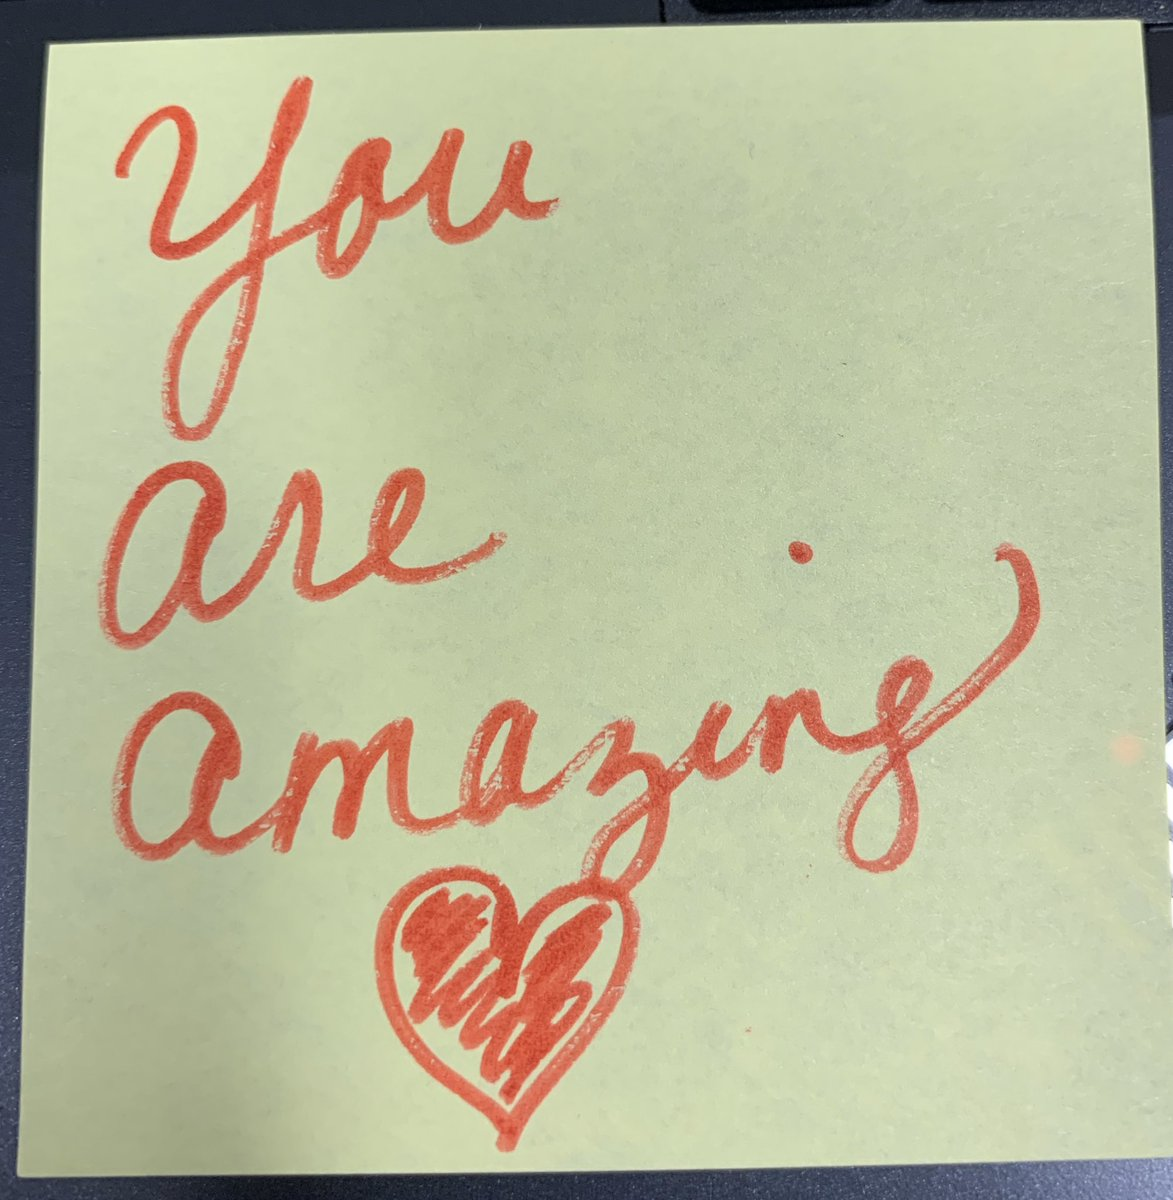 @JLo #YouAreAmazing Love Note Coming Soon:) <br>http://pic.twitter.com/ymJB5Lc827